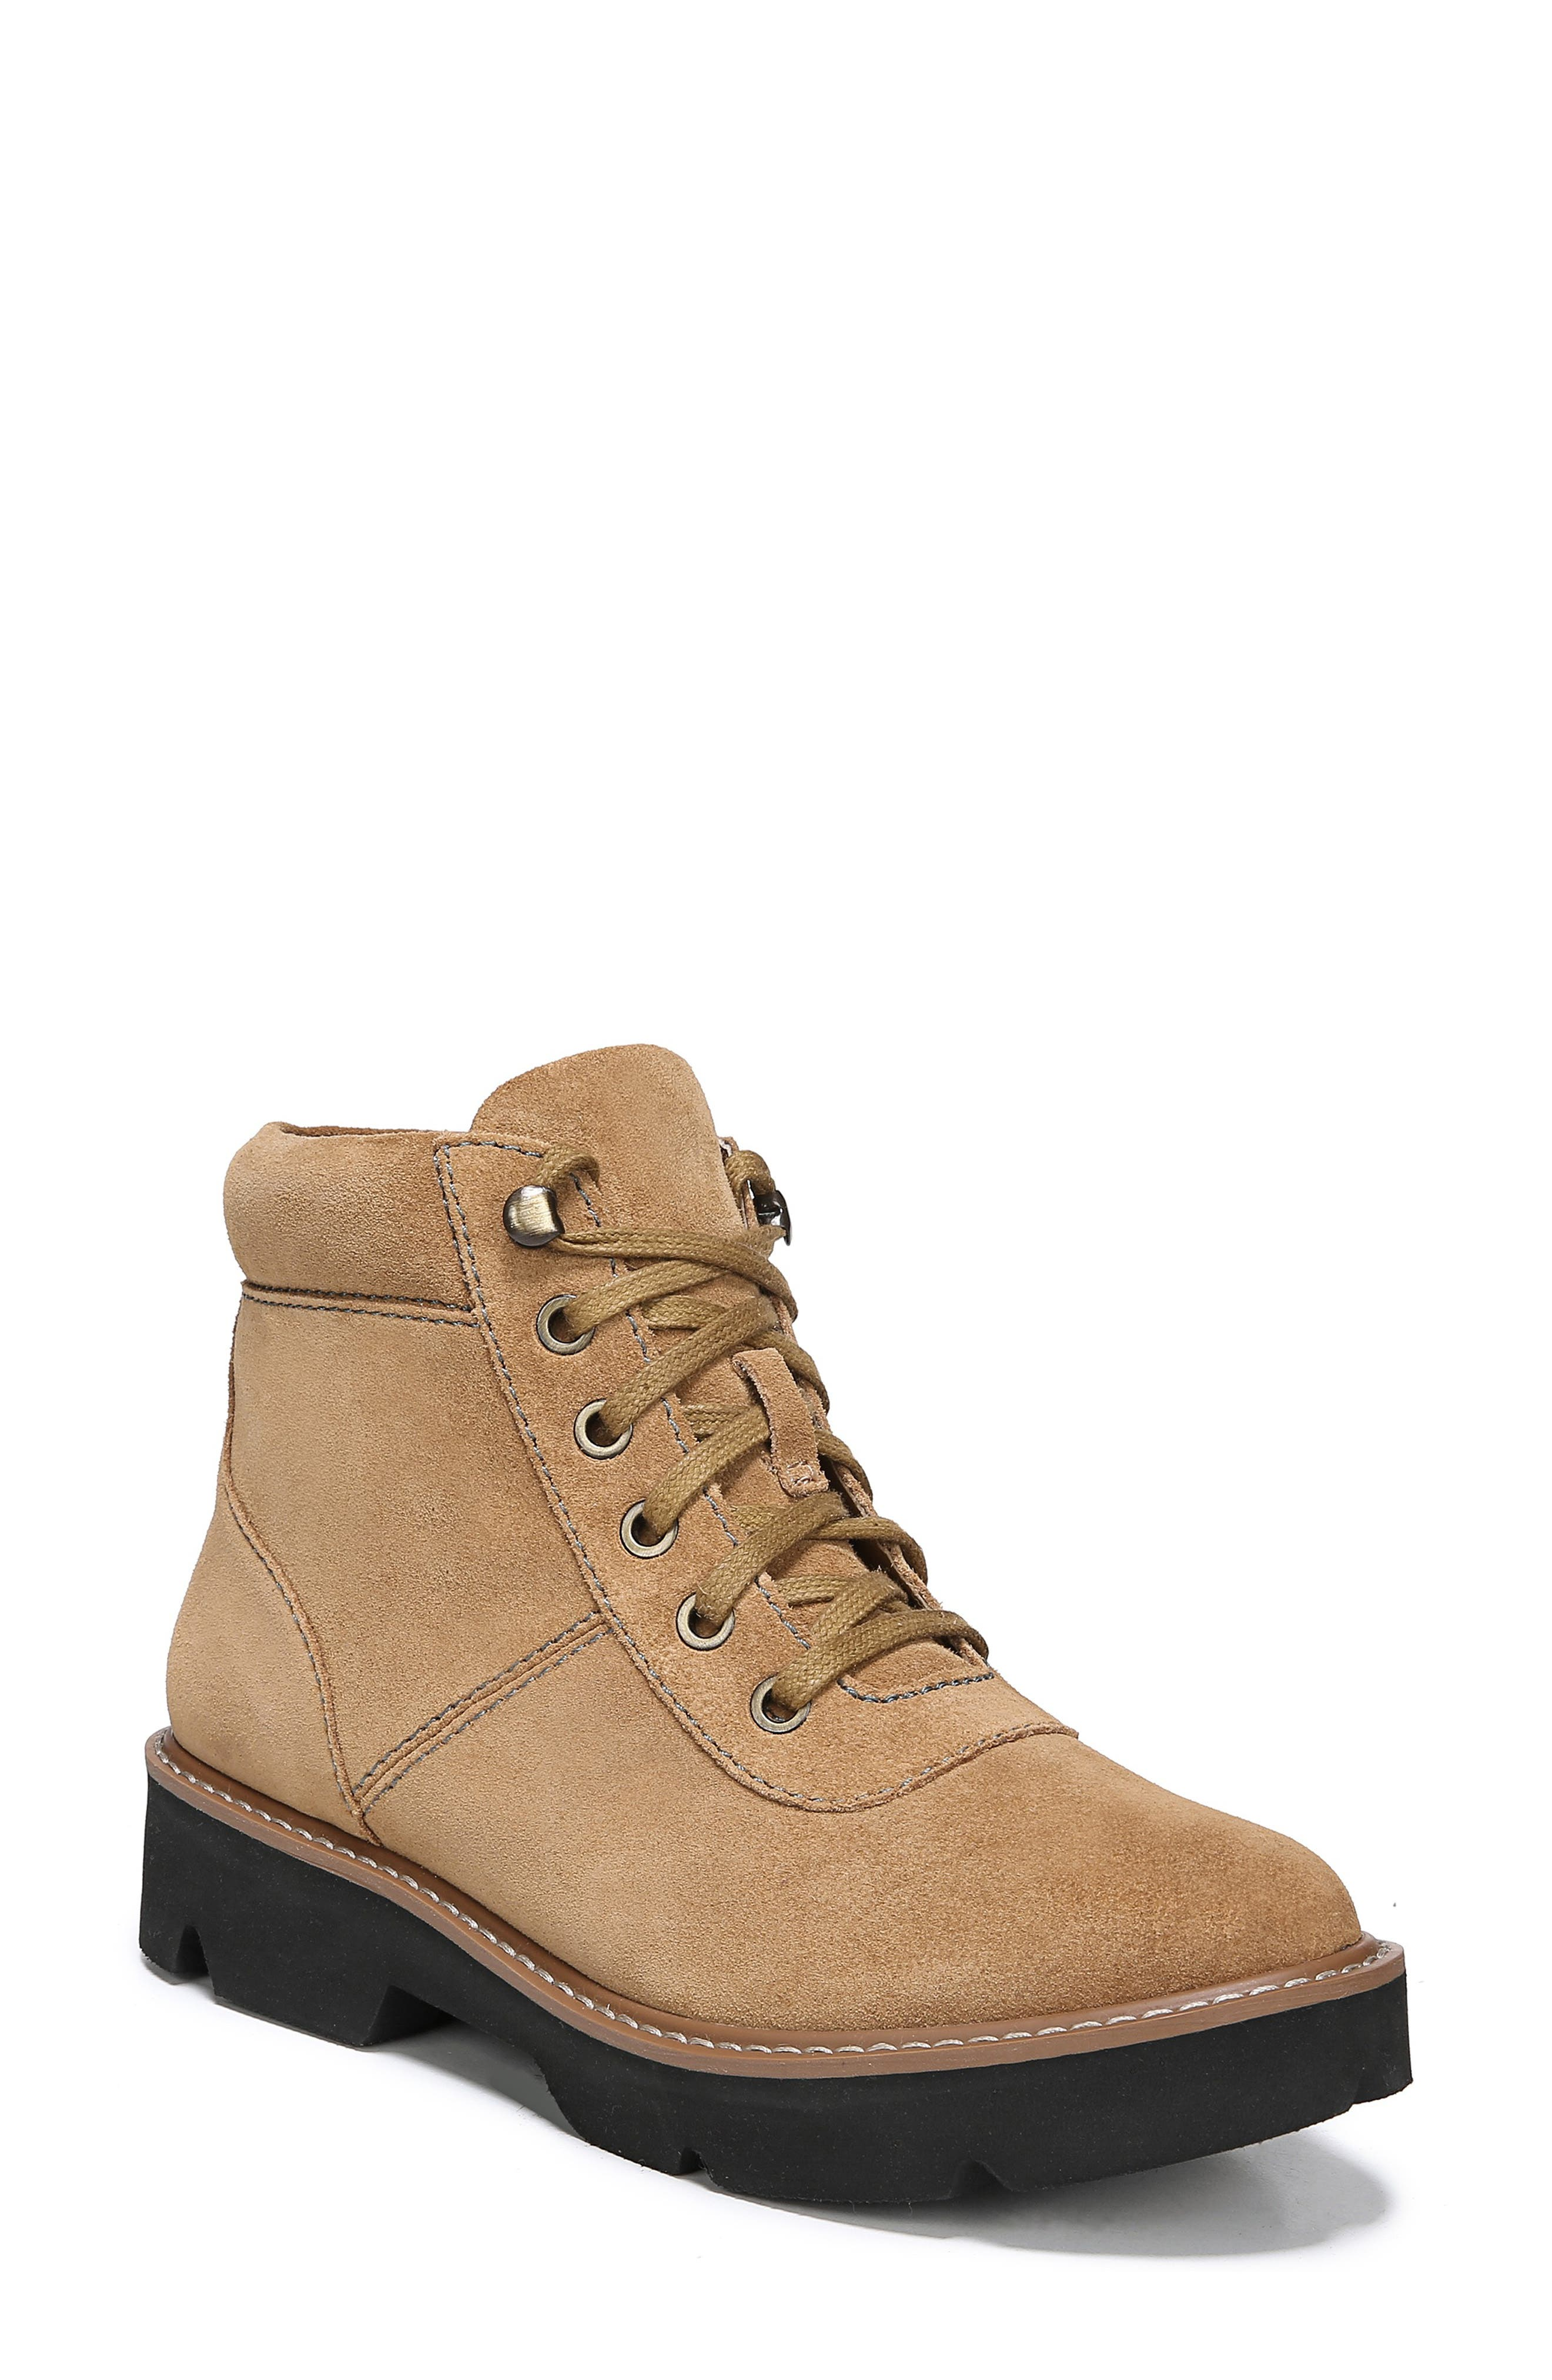 Naturalizer Lucy Hiking Boot, Brown